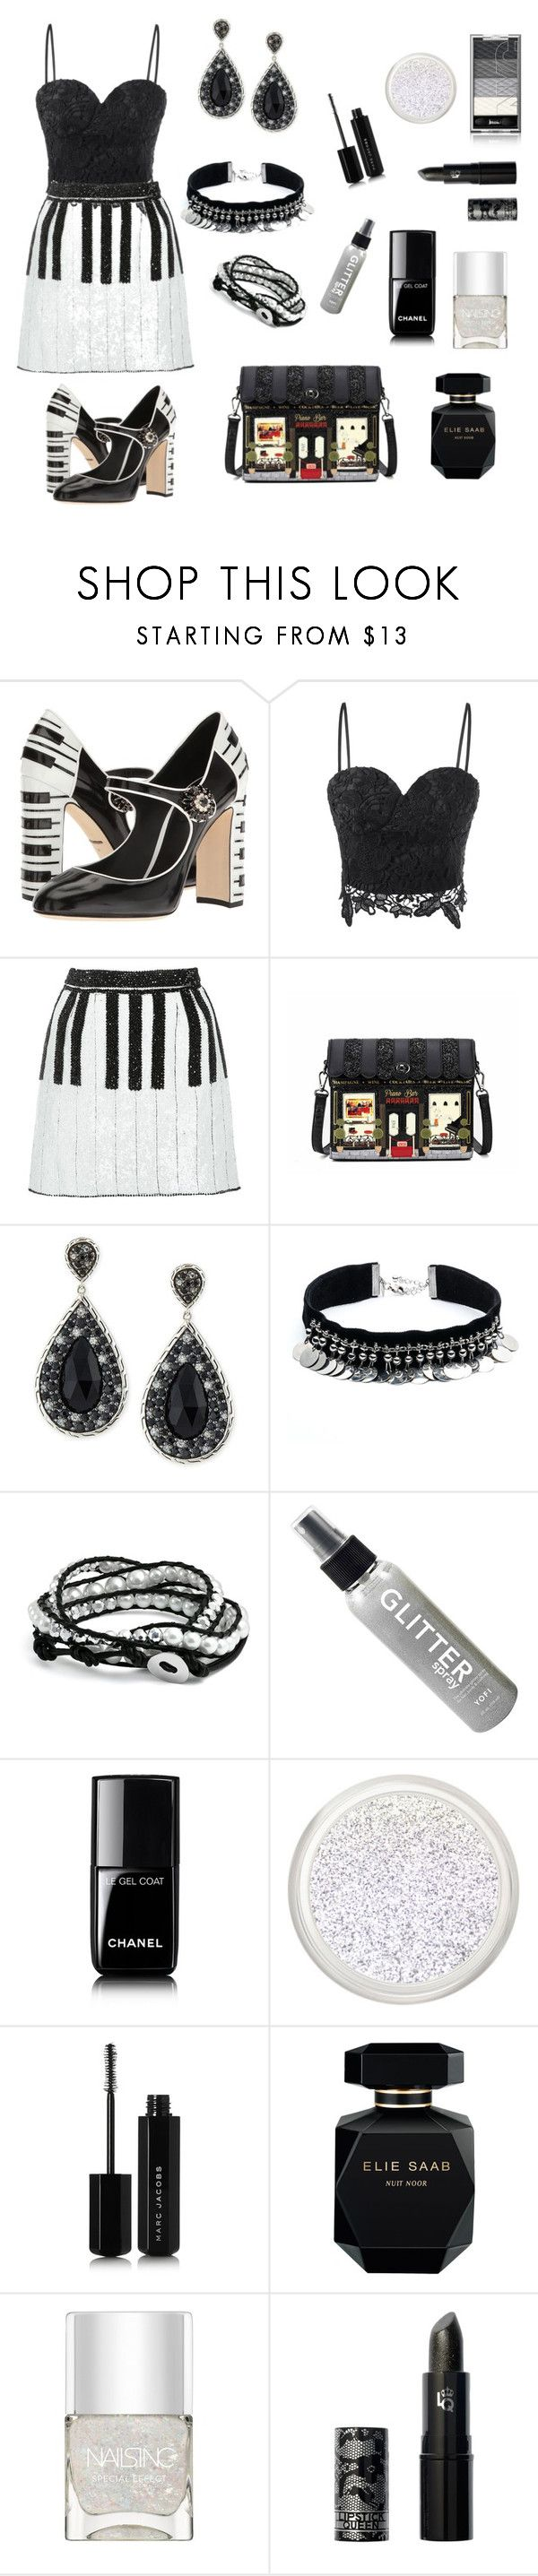 Piano Bar by siriusfunbysheila1954 on Polyvore featuring Dolce&Gabbana, John Hardy, DANNIJO, Bling Jewelry, Lipstick Queen, Marc Jacobs, Elie Saab, Chanel and Nails Inc.